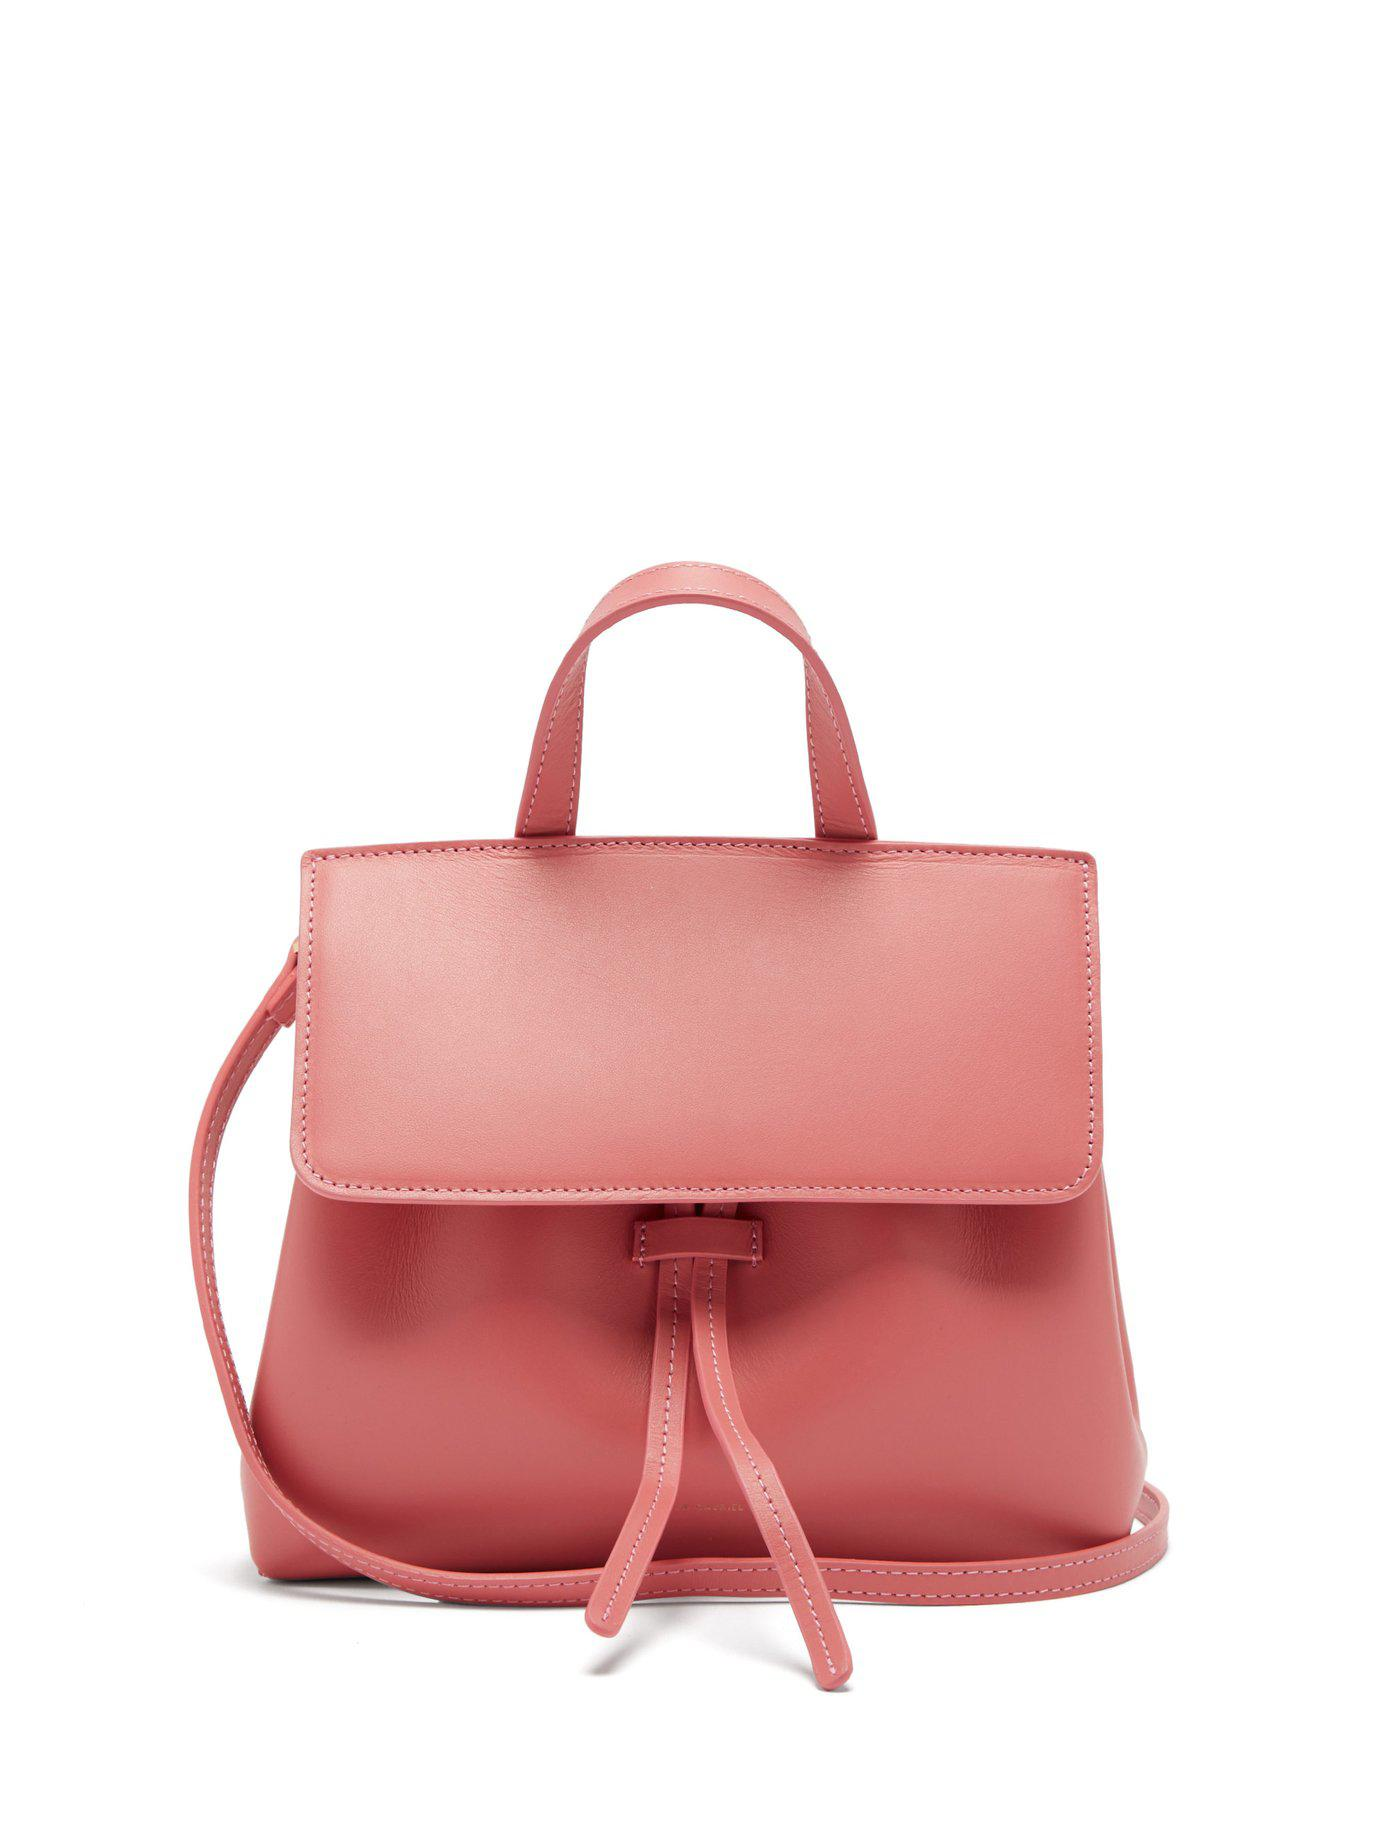 ac2633b9858 Lyst - Mansur Gavriel Mini Mini Lady Leather Cross Body Bag in Pink